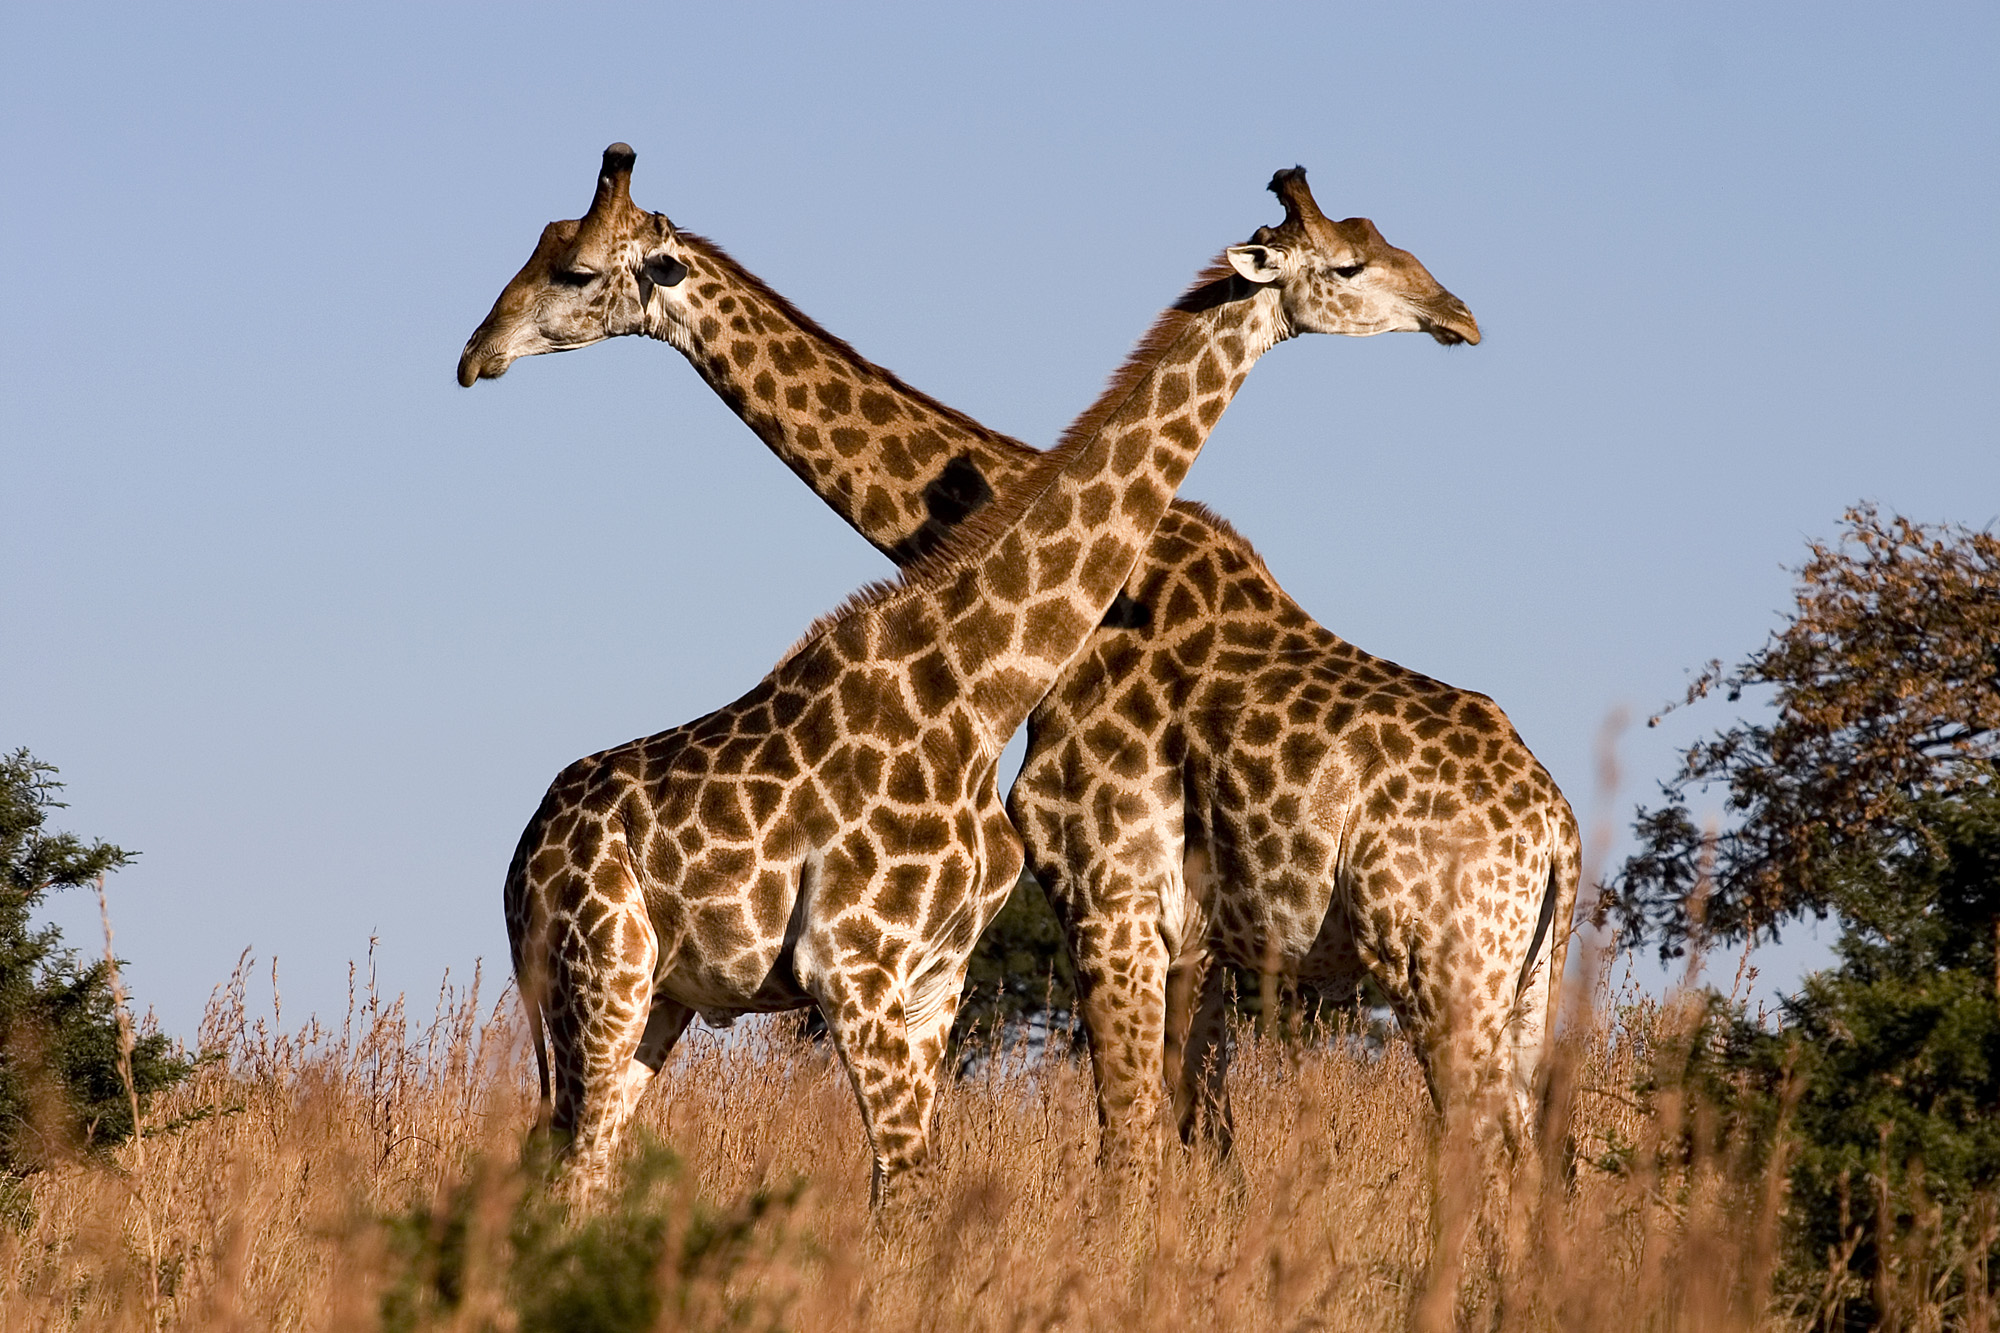 Giraffe_Ithala_KZN_South_Africa